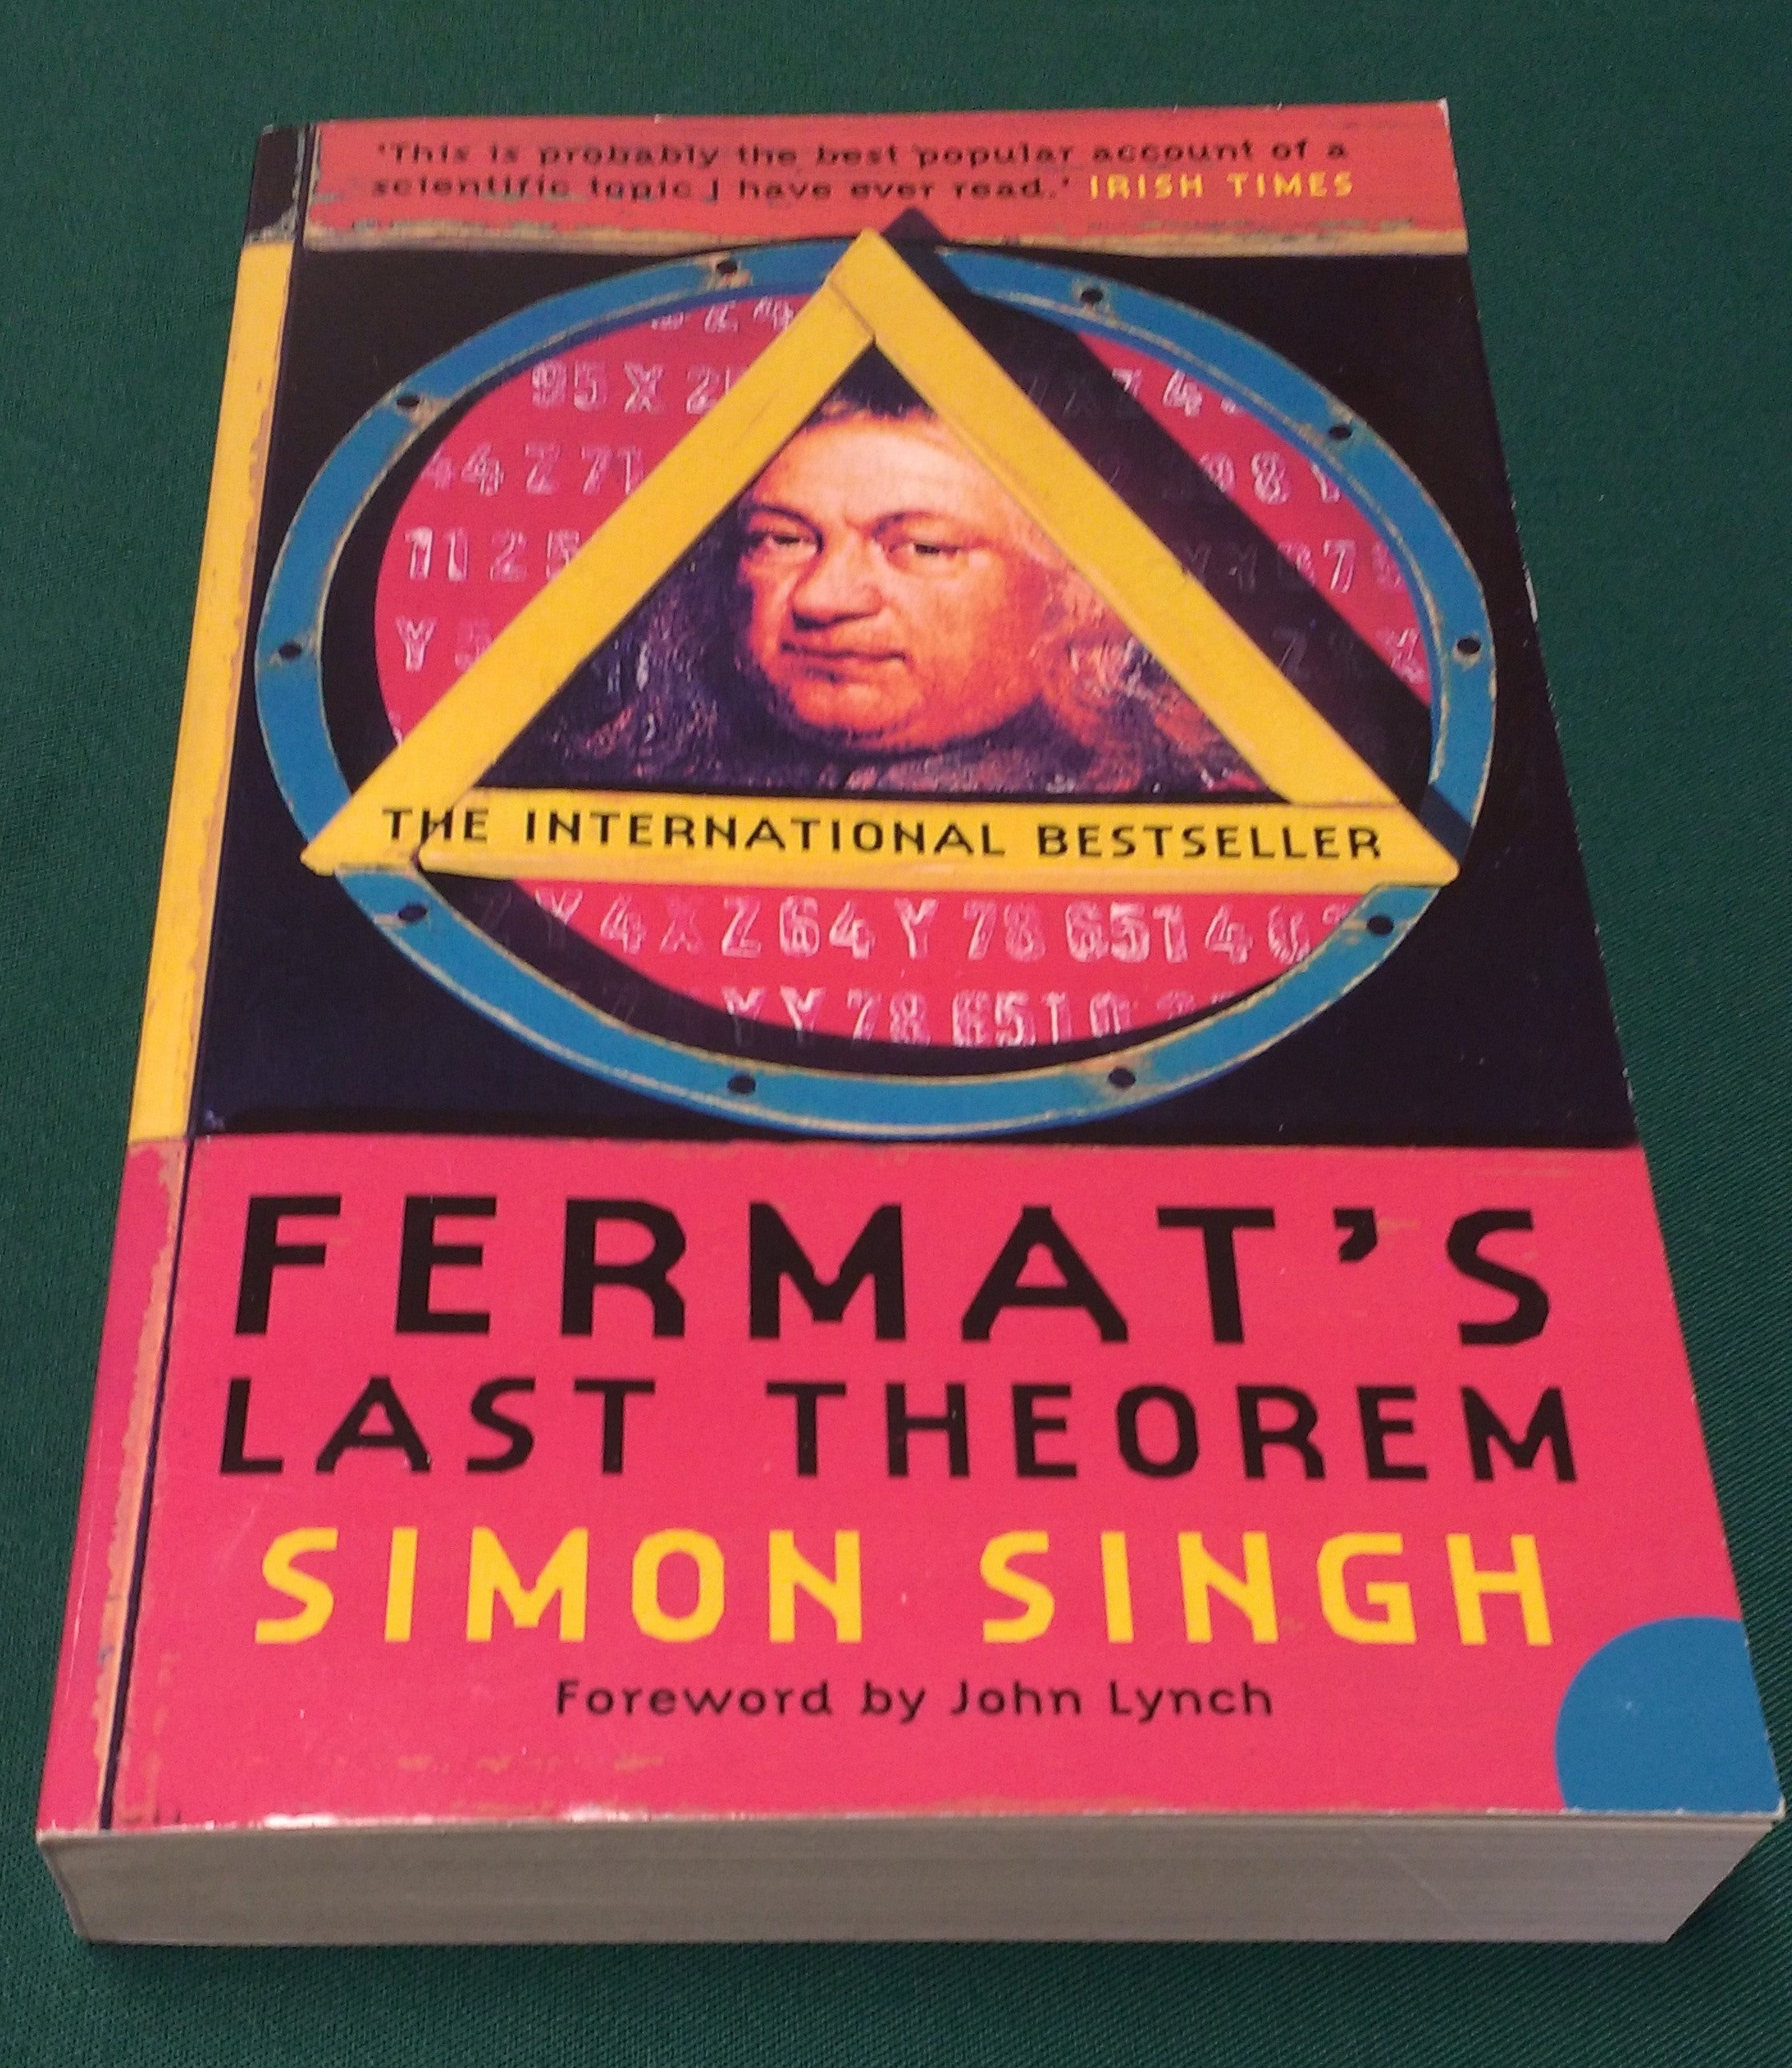 Signed copy of Fermat's Last Theorem by Simon Singh (Paperback)